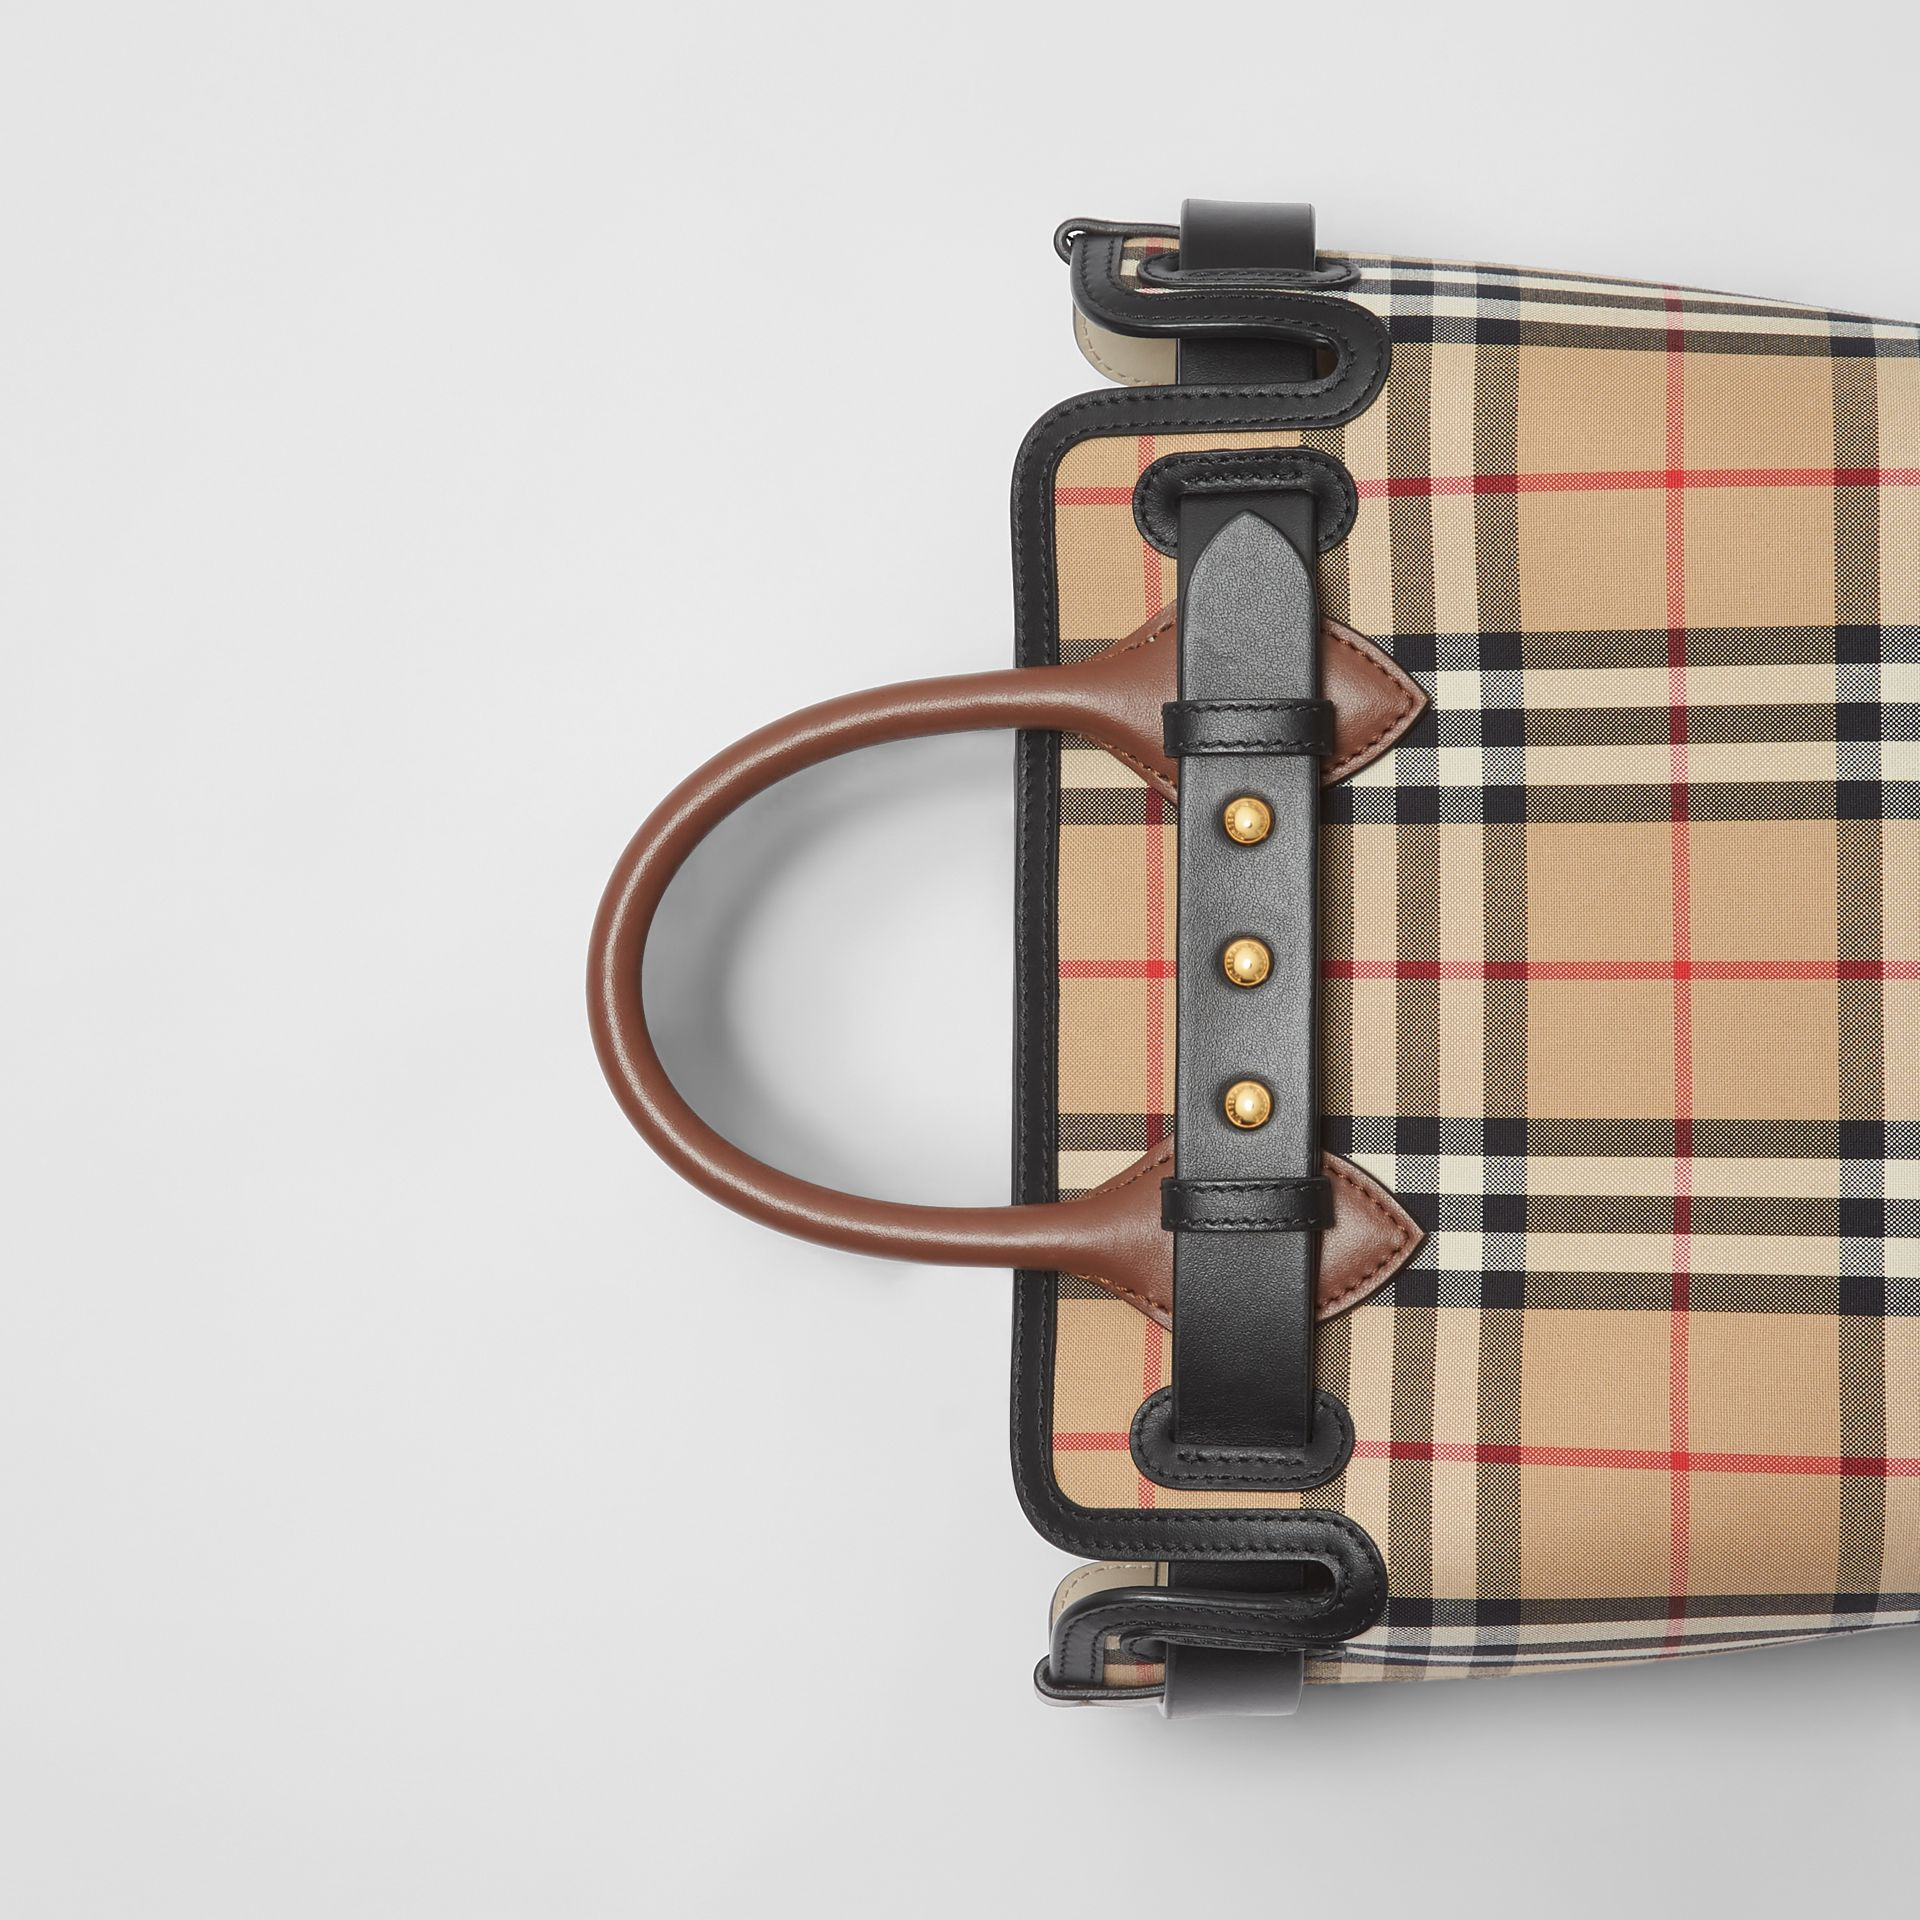 Mini sac The Belt avec Vintage check à triple pression (Beige D'archive) - Femme | Burberry - photo de la galerie 1